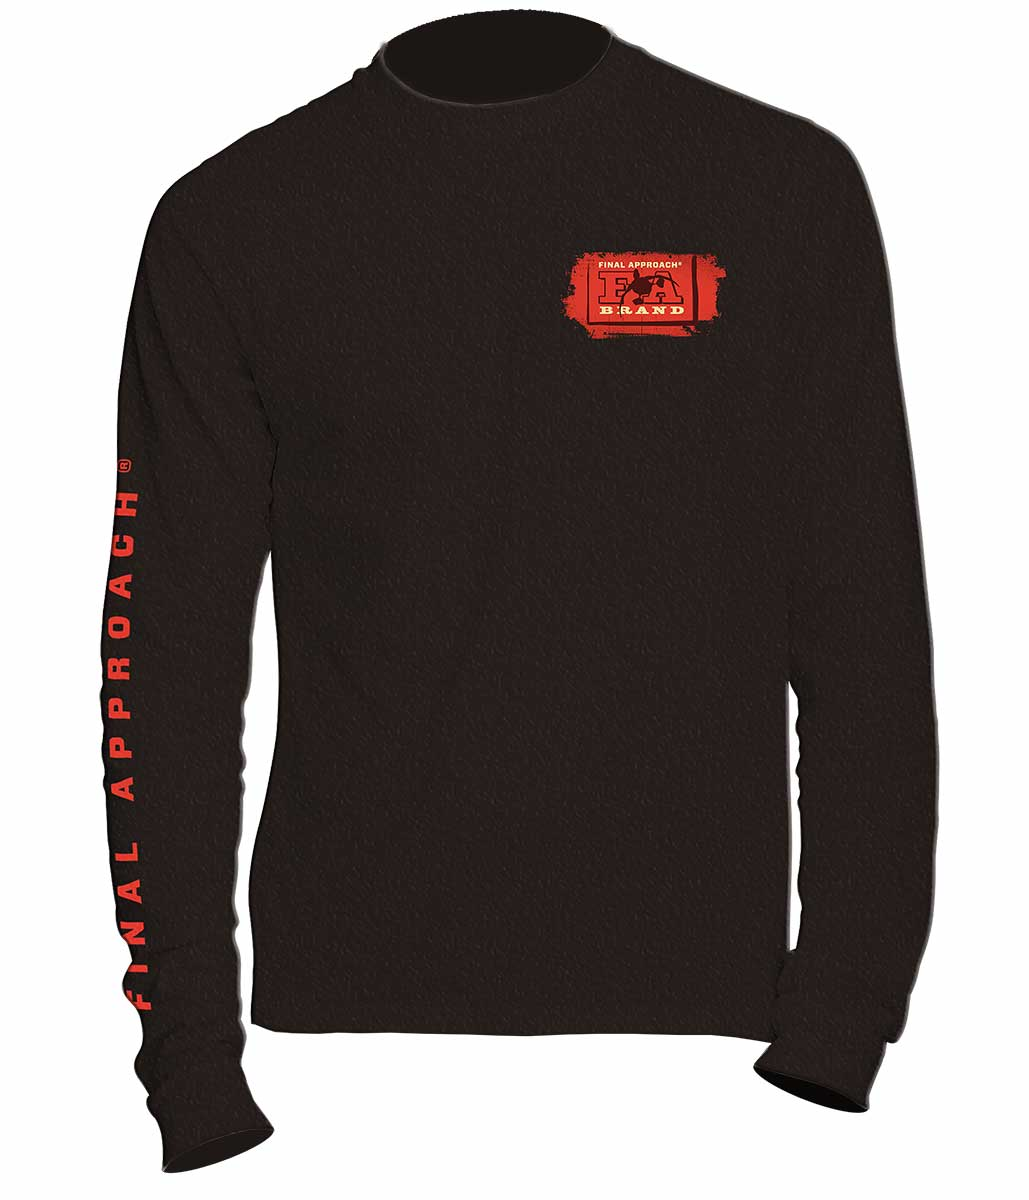 Final Approach The Waterfowlers Co LS Crew Shirt, Black